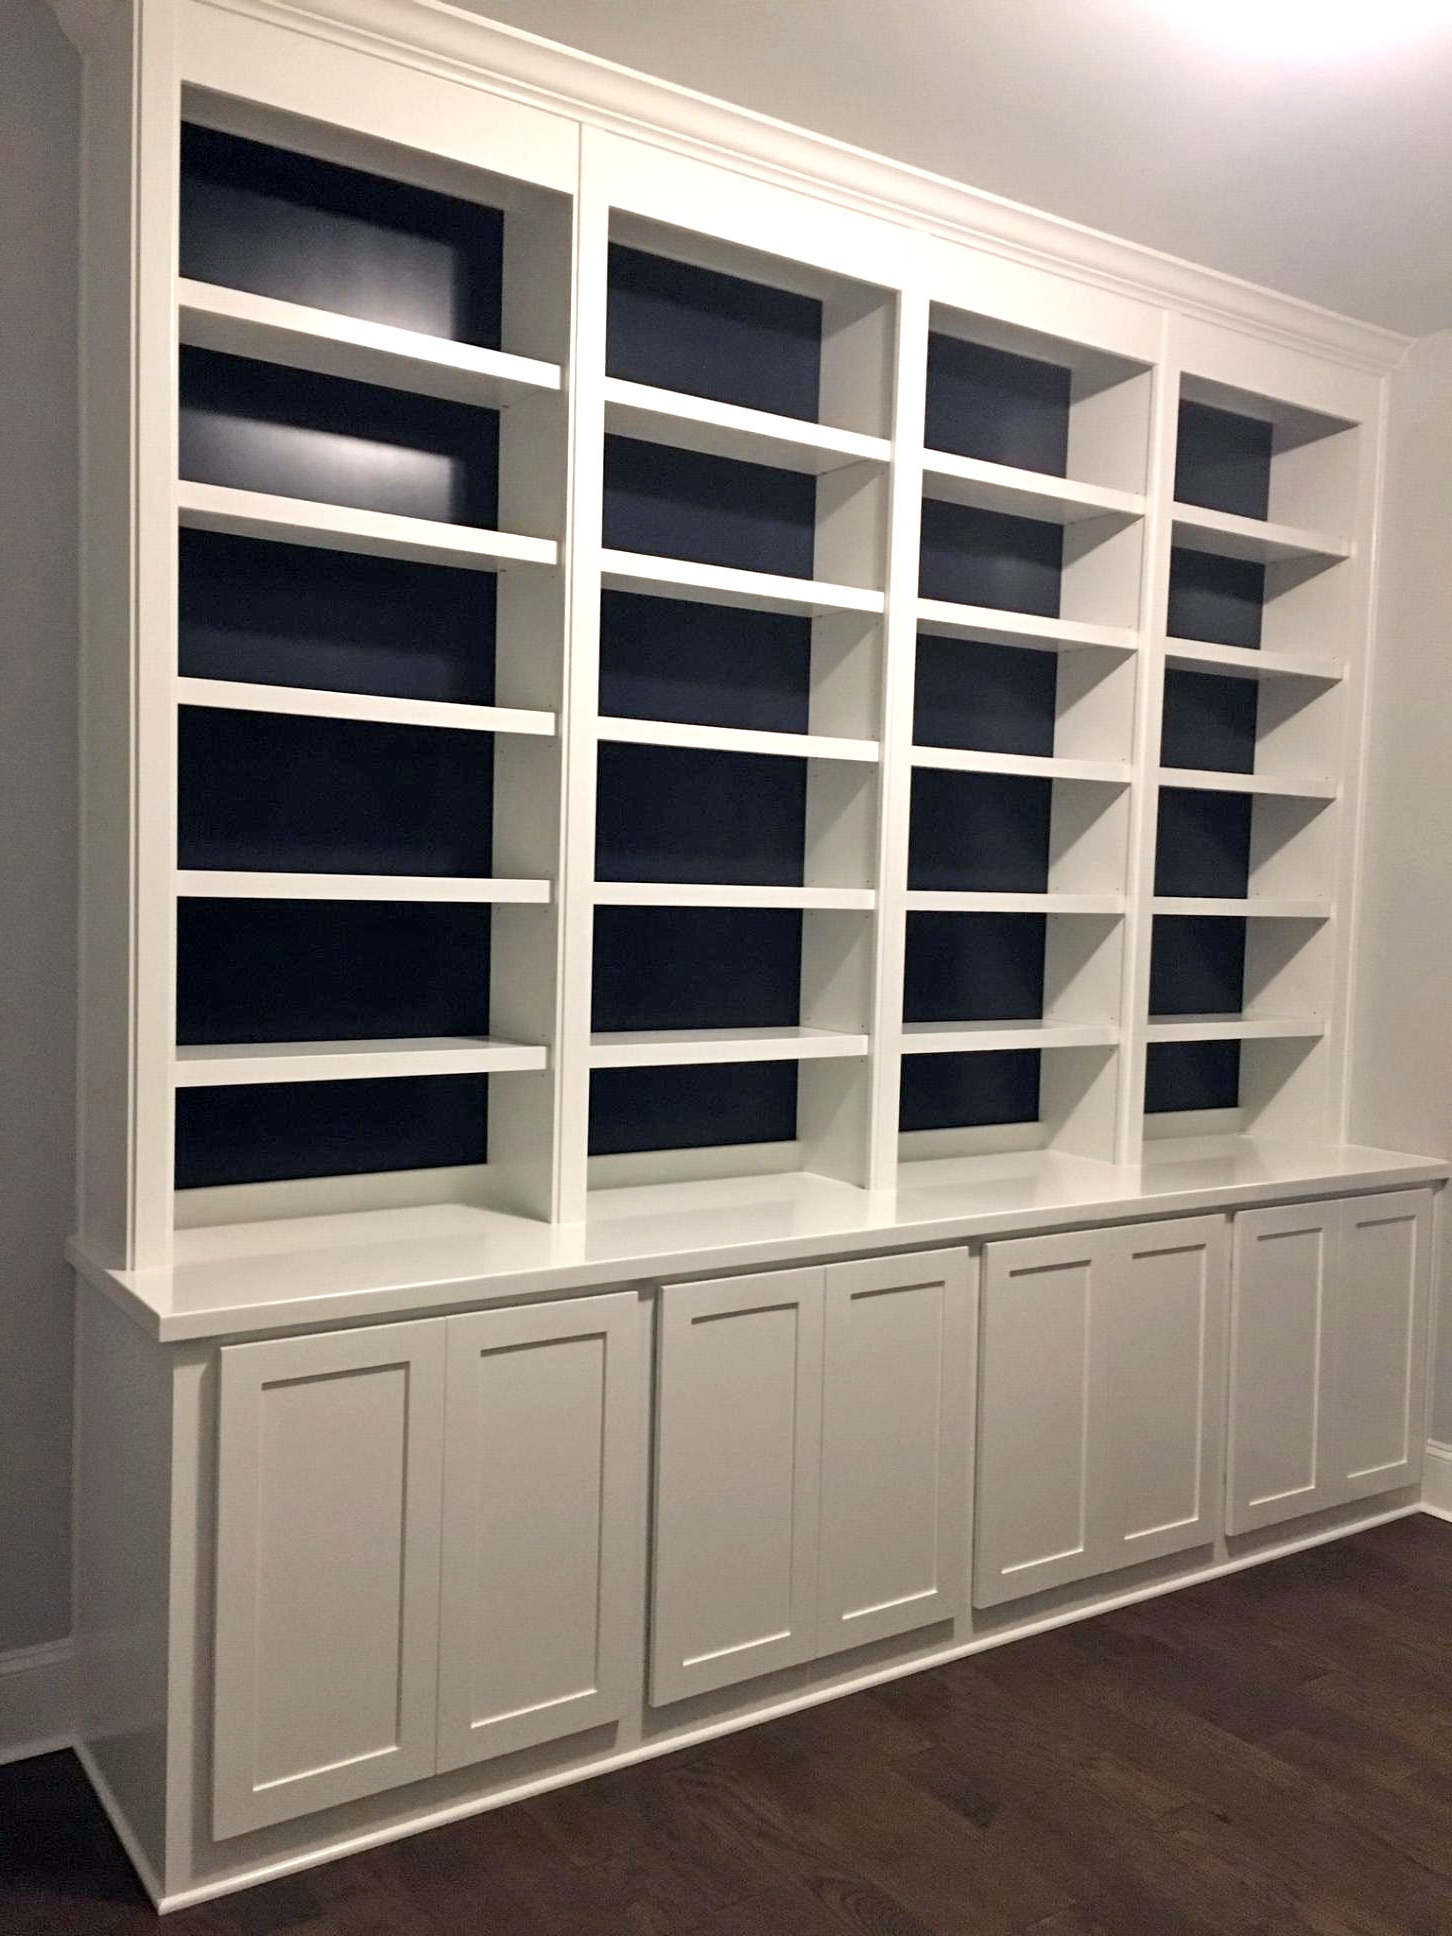 Built-In with Accent Backer Color, Adjustable Shelves, Face Frame Detail, Shaker Doors, and Crown